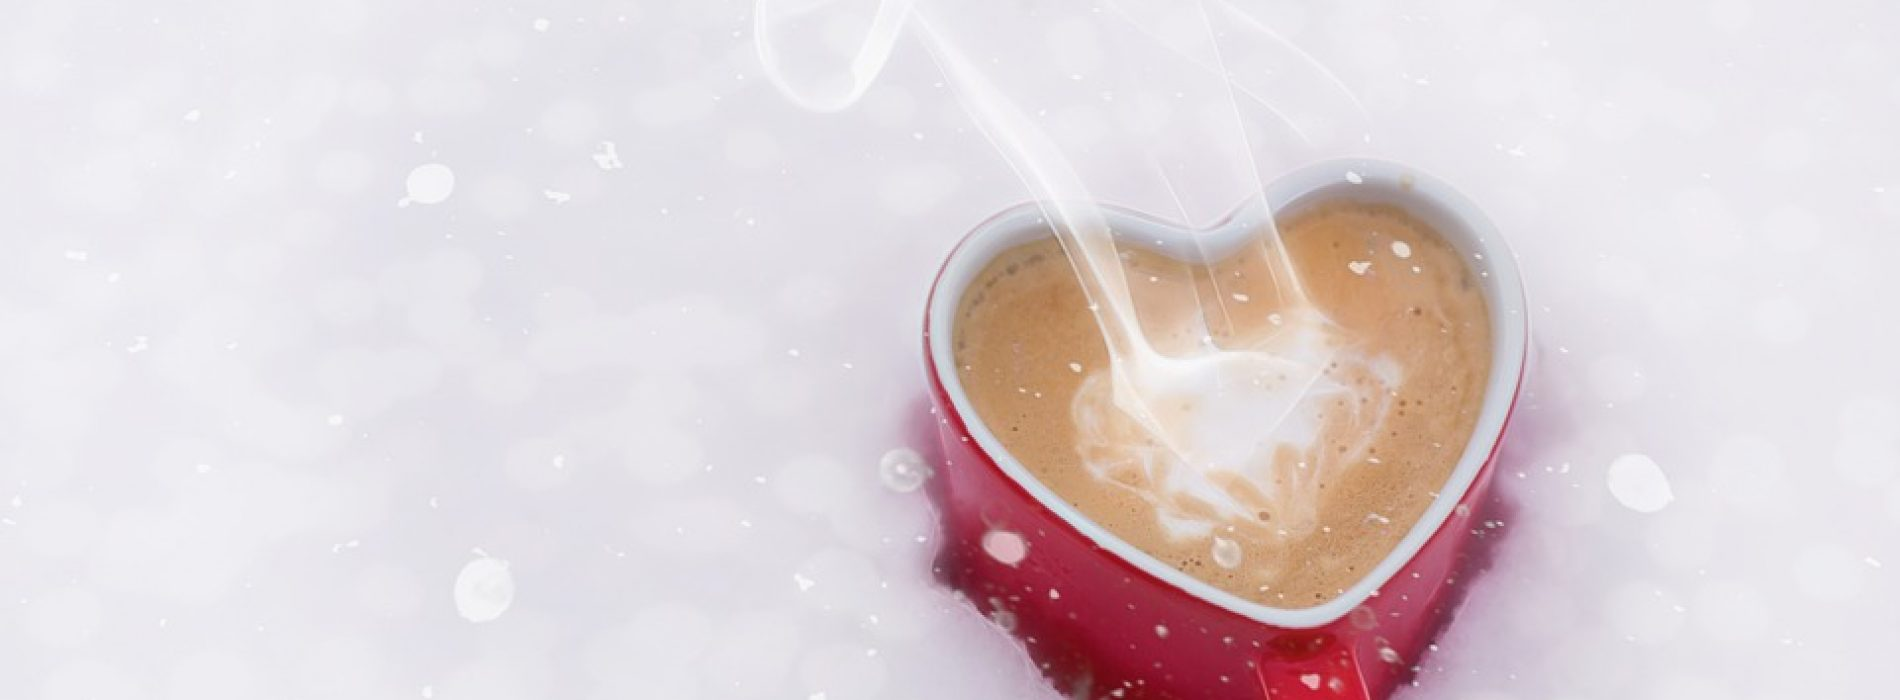 Woohoo! Drinking Coffee Reduces The Risk of Death From All Causes